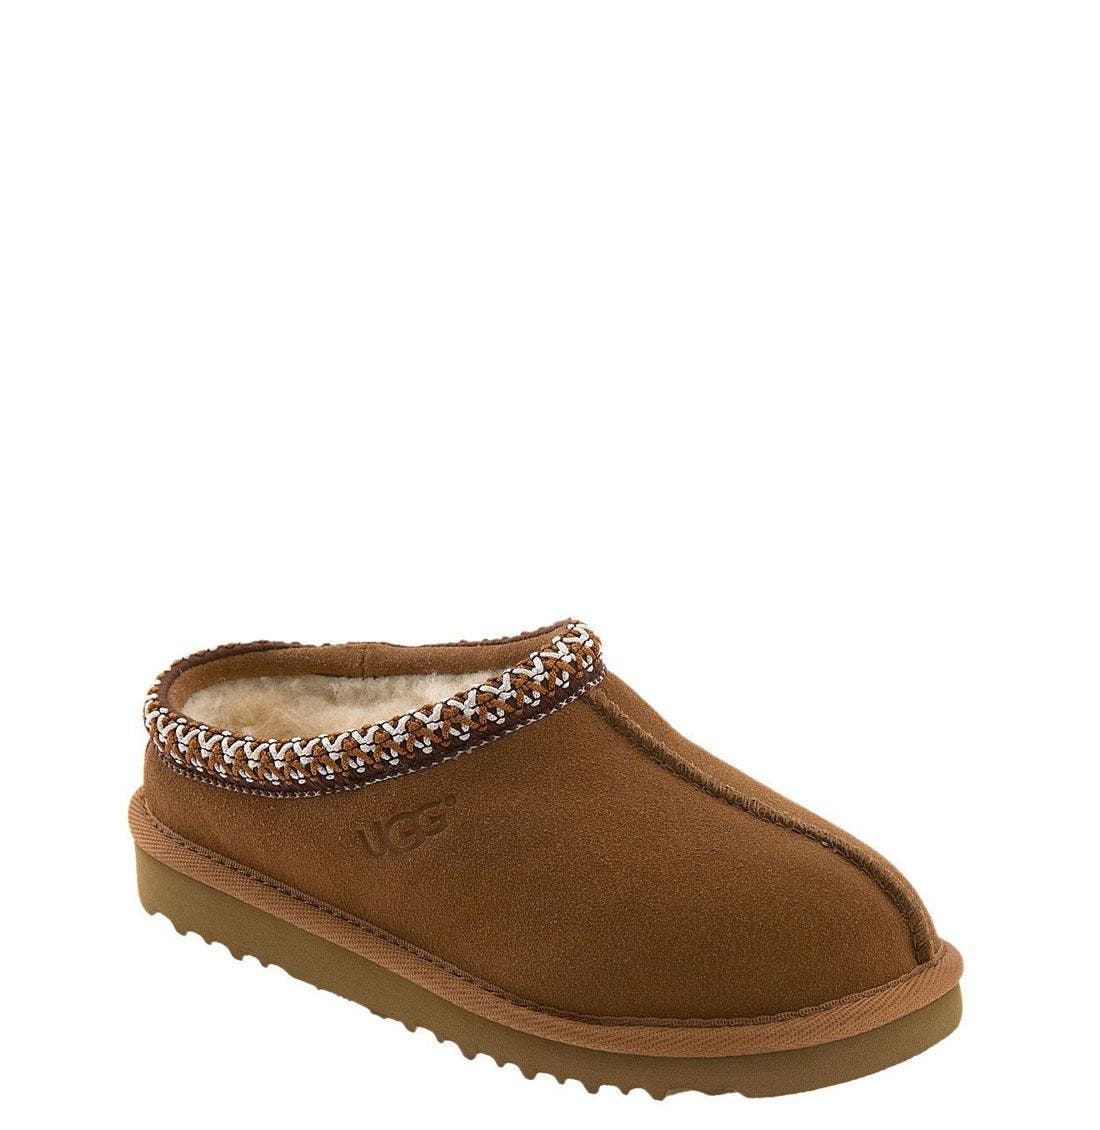 Main Image - UGG® Tasman Slipper (Toddler, Little Kid & Big Kid)